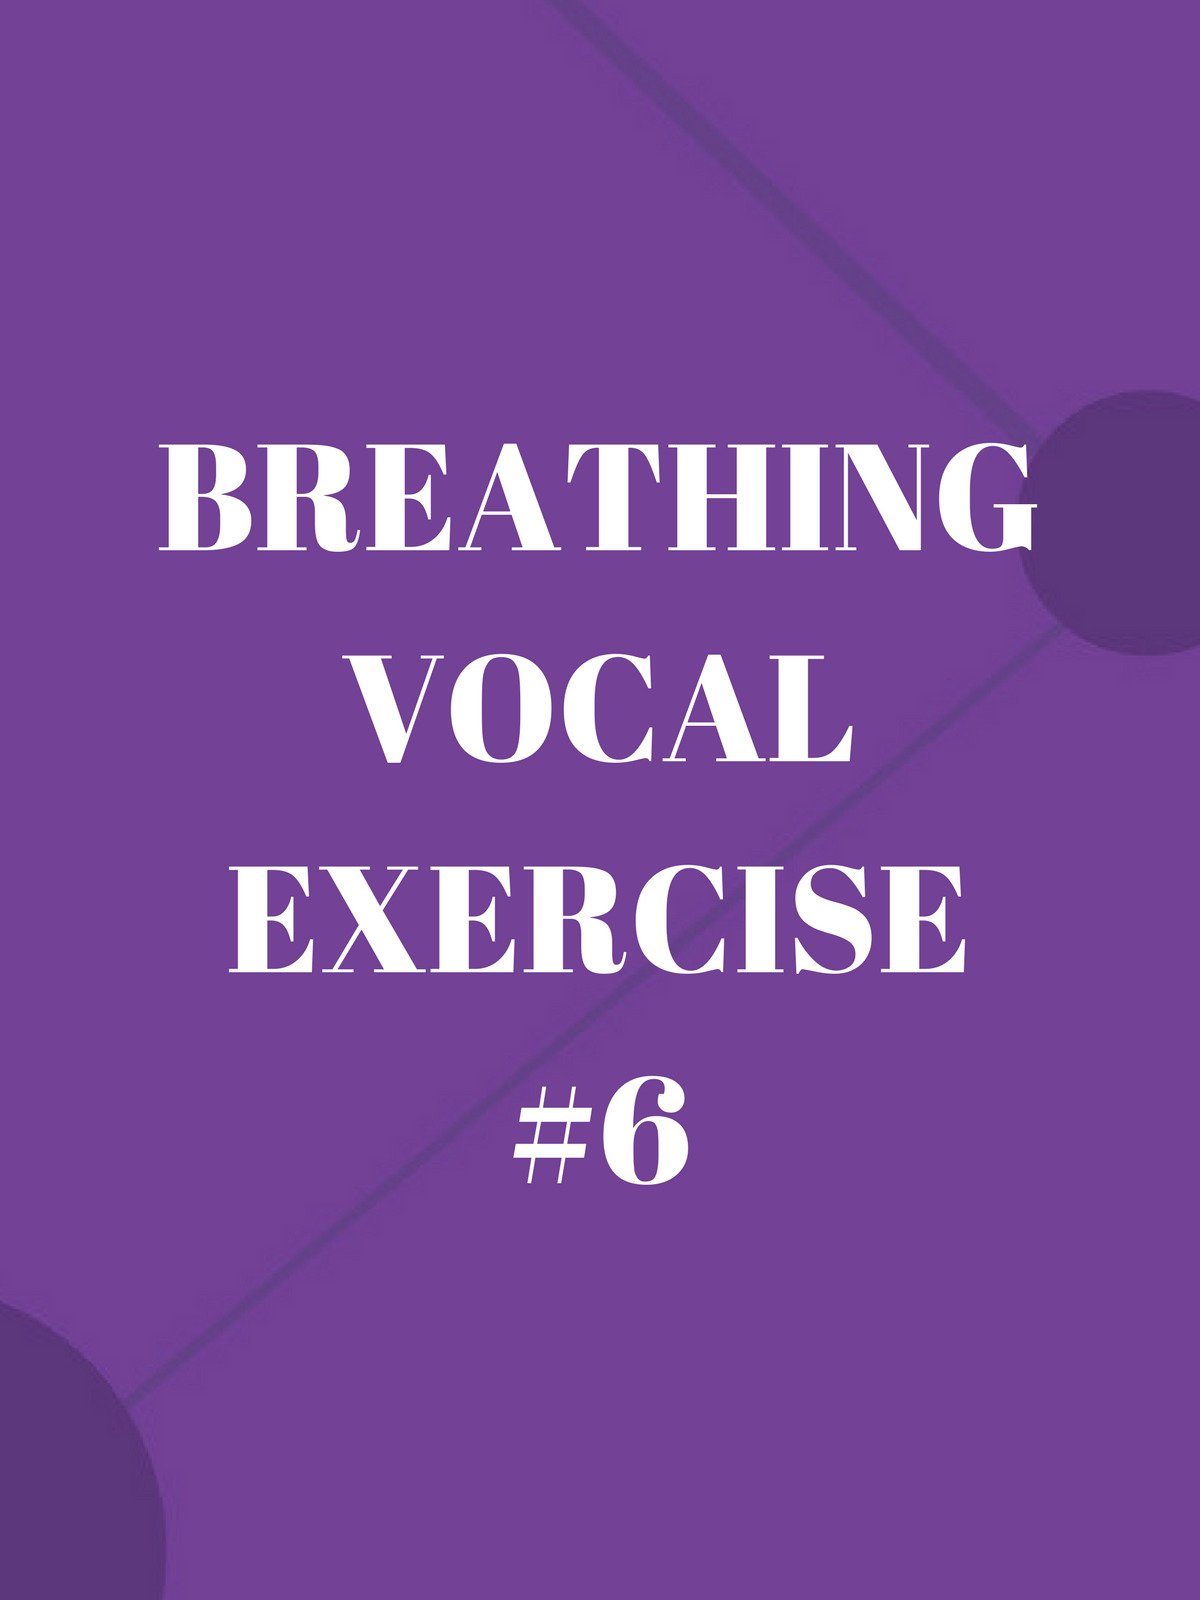 Breathing Vocal Exercise #6